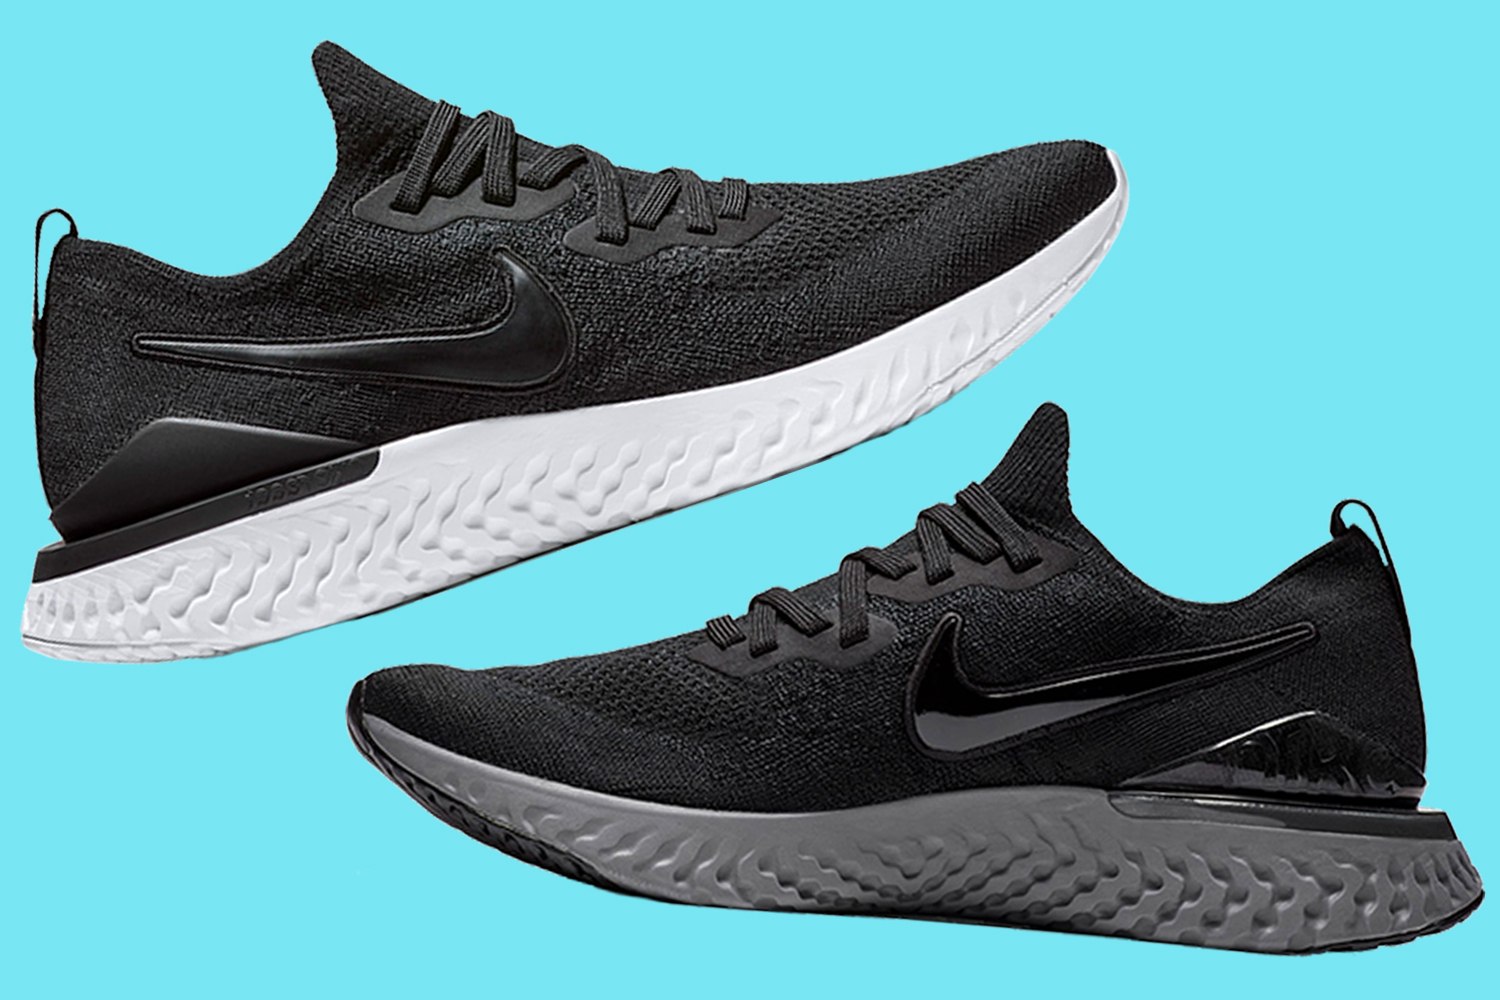 timeless design e3e19 78915 Nike Epic React Flyknit 2 Running Sneakers Are 40% Off ...